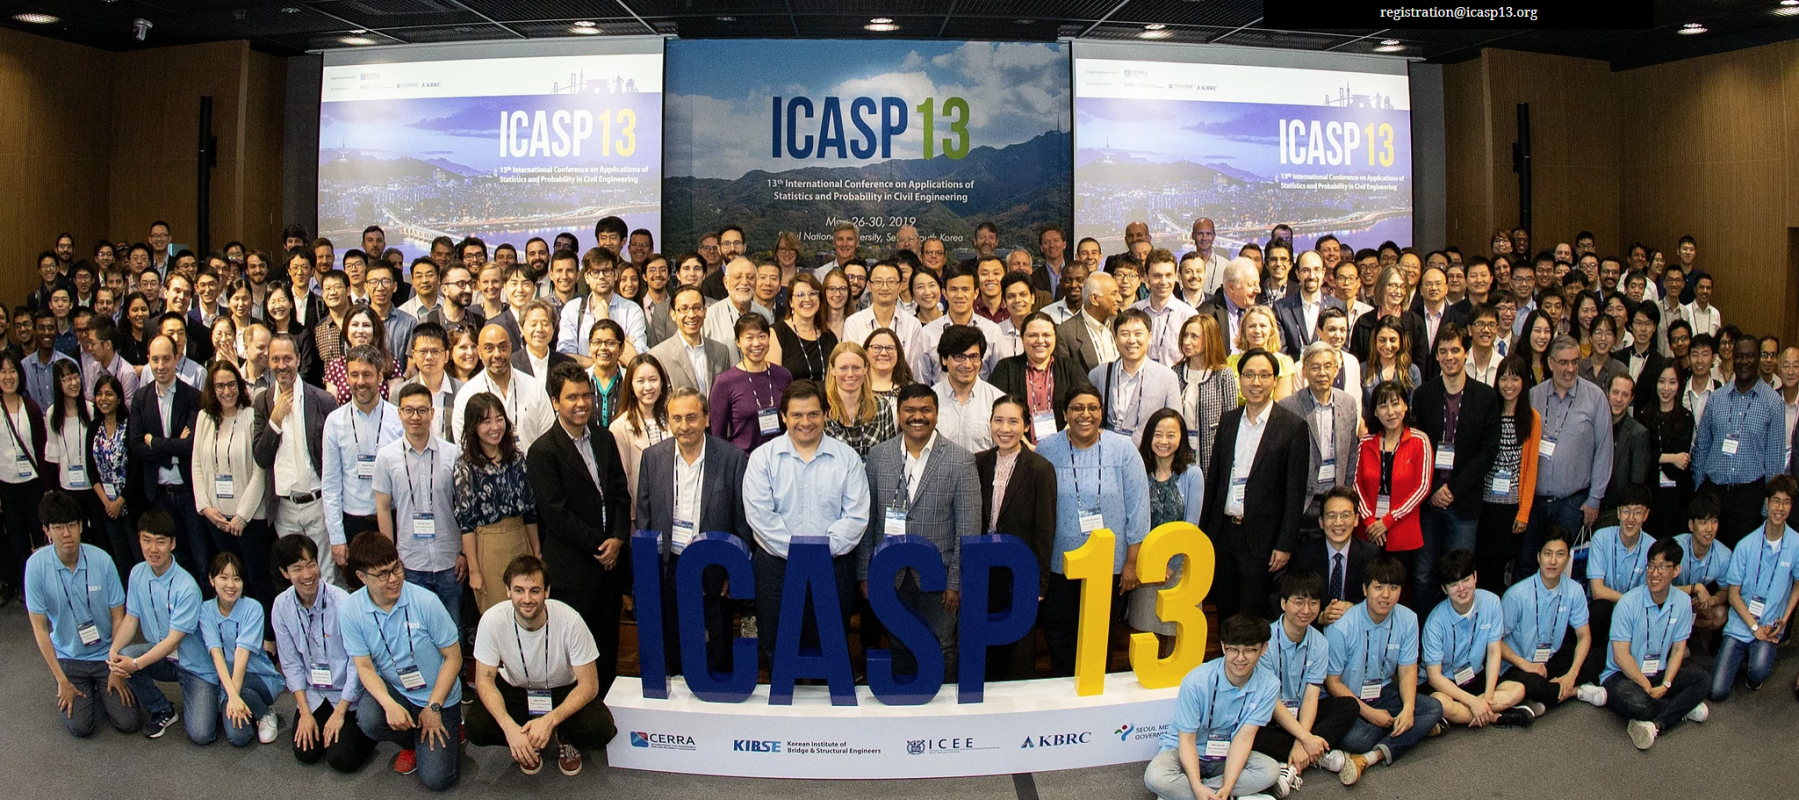 Liyang Ma used the Doctoral Travel Grant for International Connections to attend the ICASP13 conference in South Korea